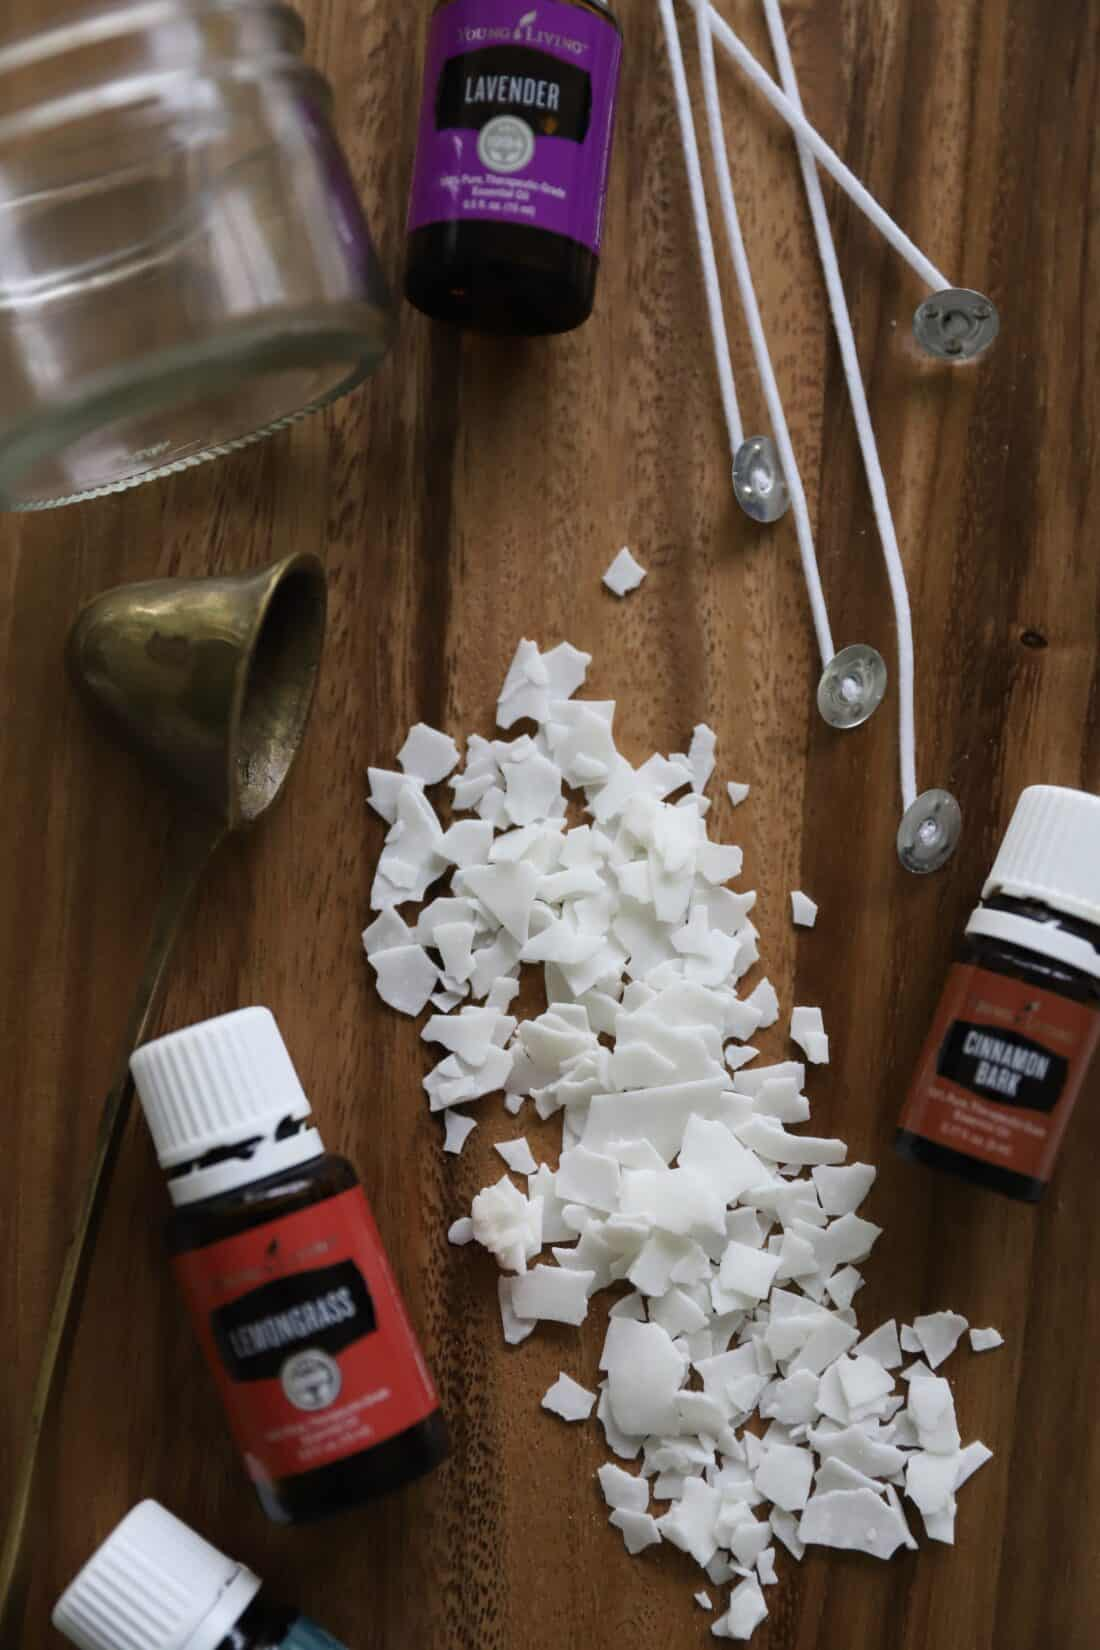 all of the supplies you need to make DIY essential oil candles from home simple and easy